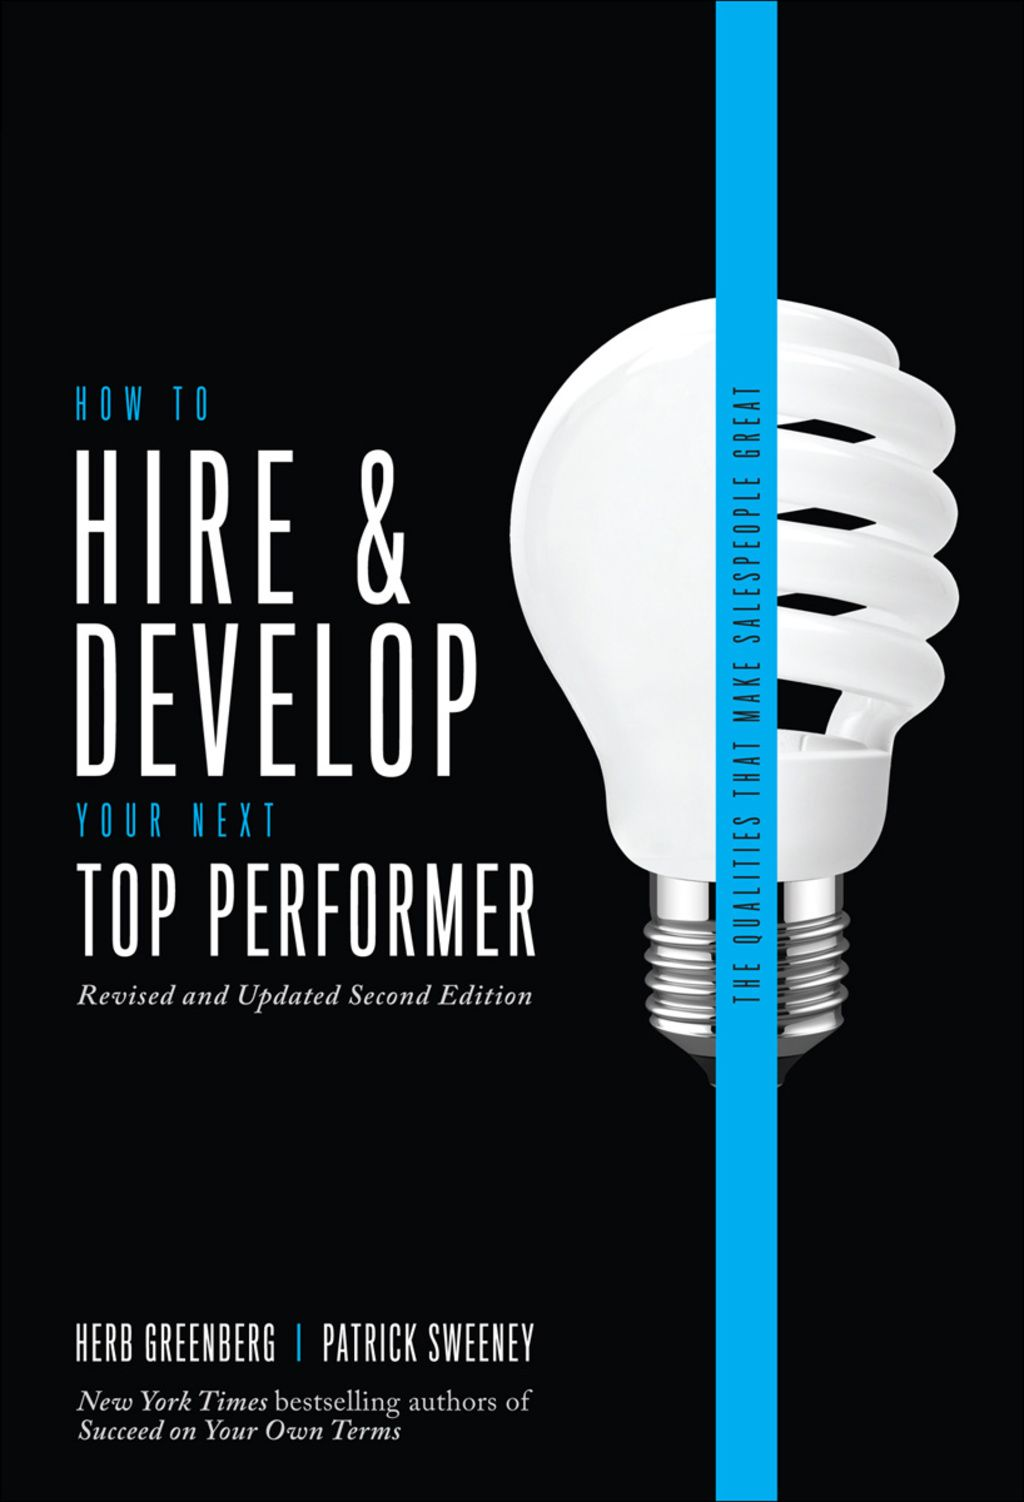 How to Hire and Develop Your Next Top Performer 2nd